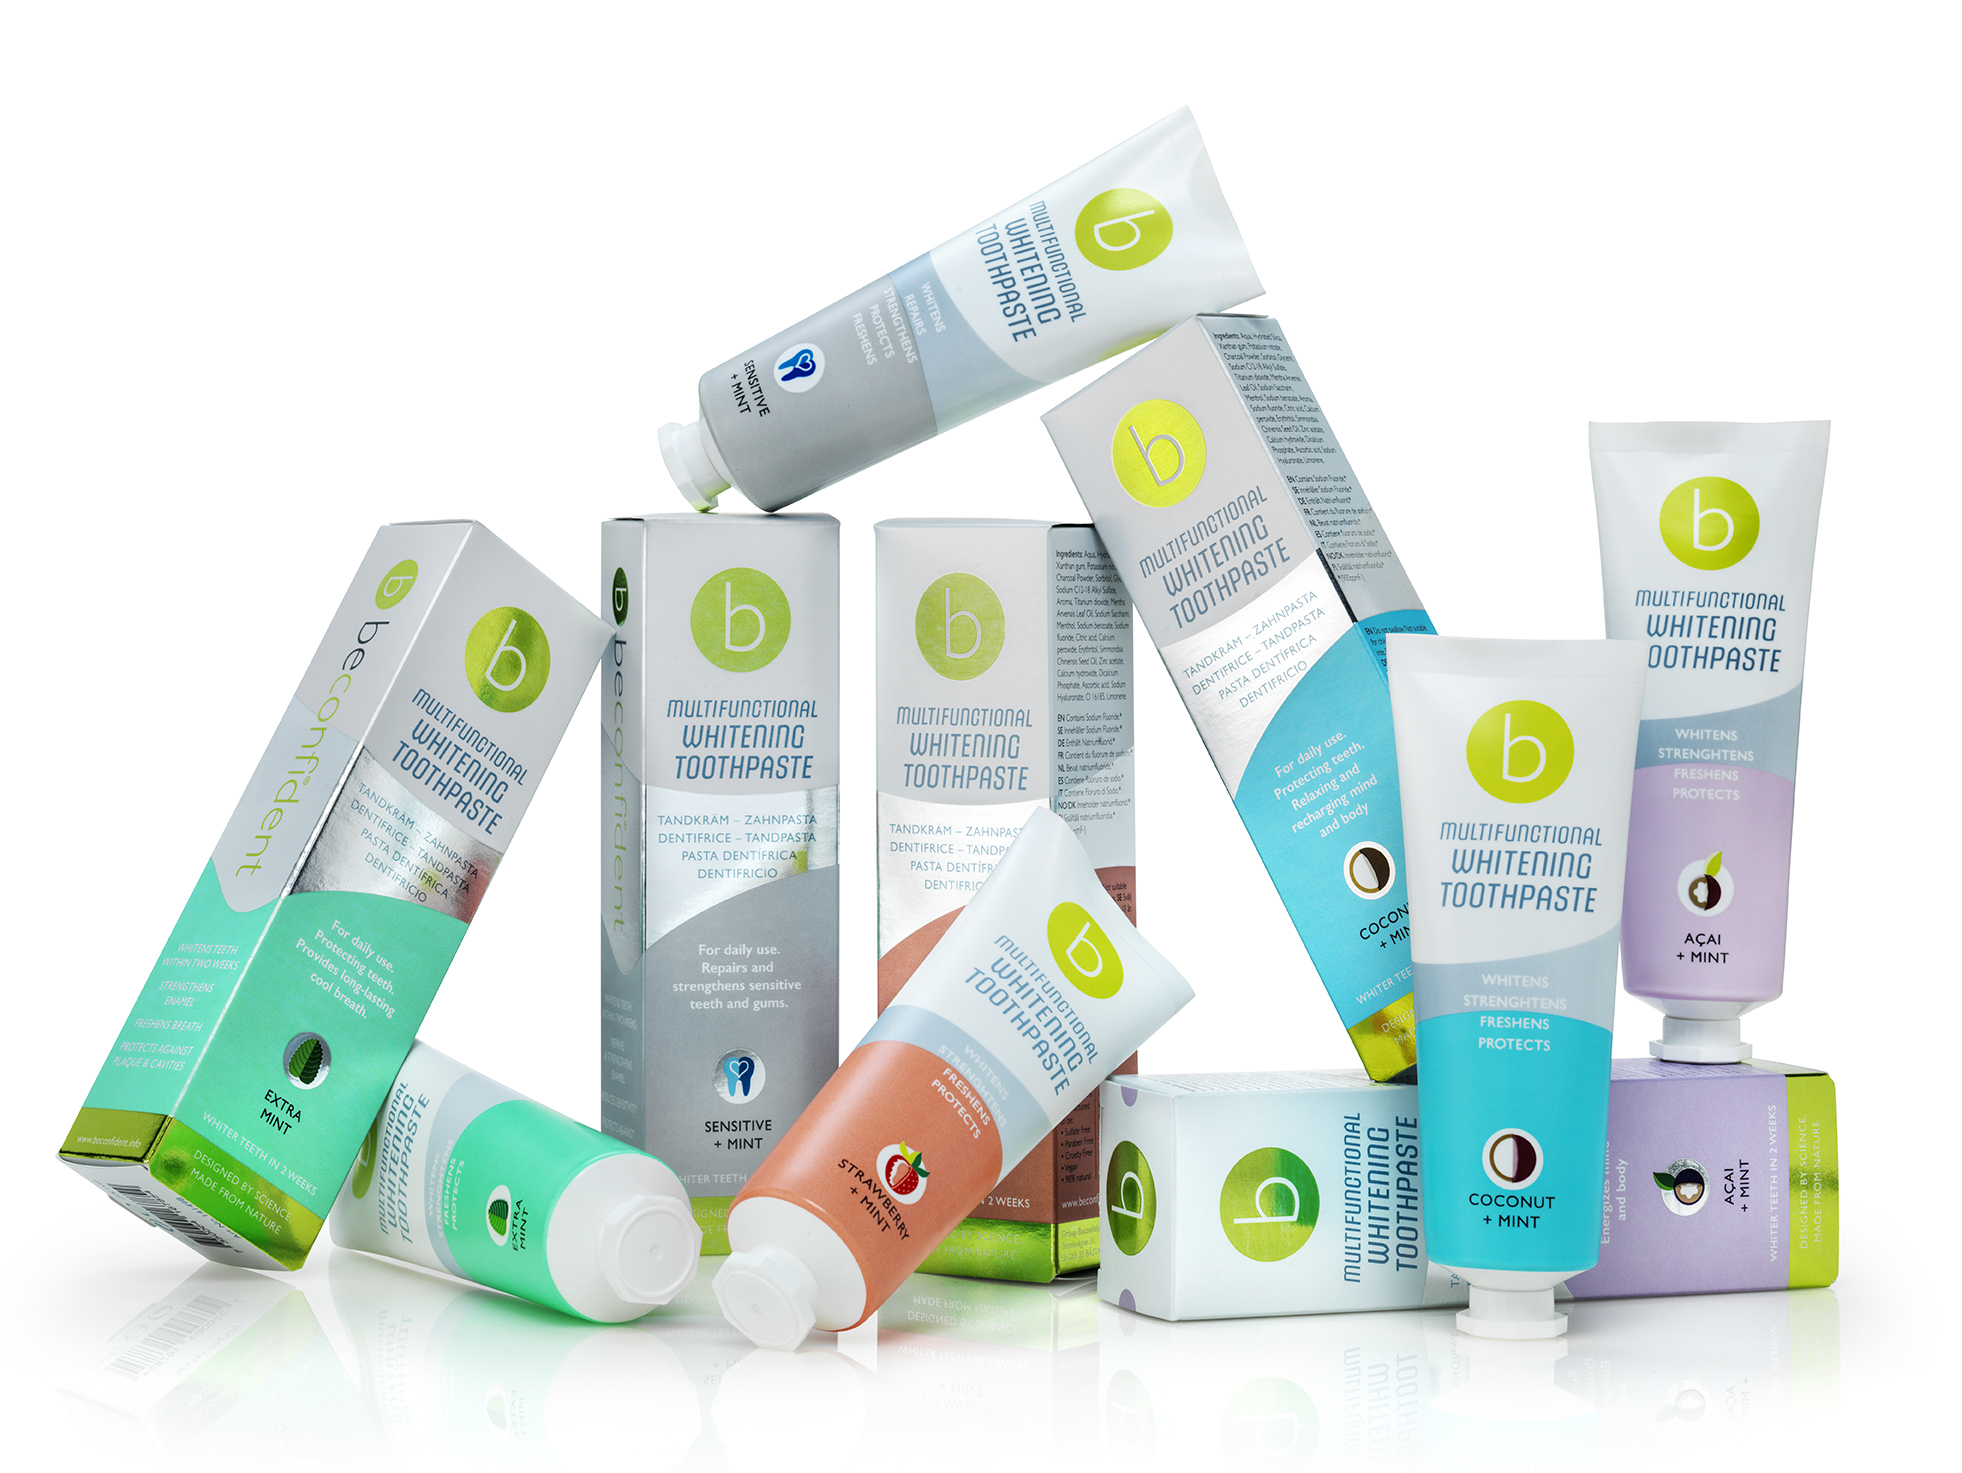 Beconfident® Multipack of Whitening Toothpastes